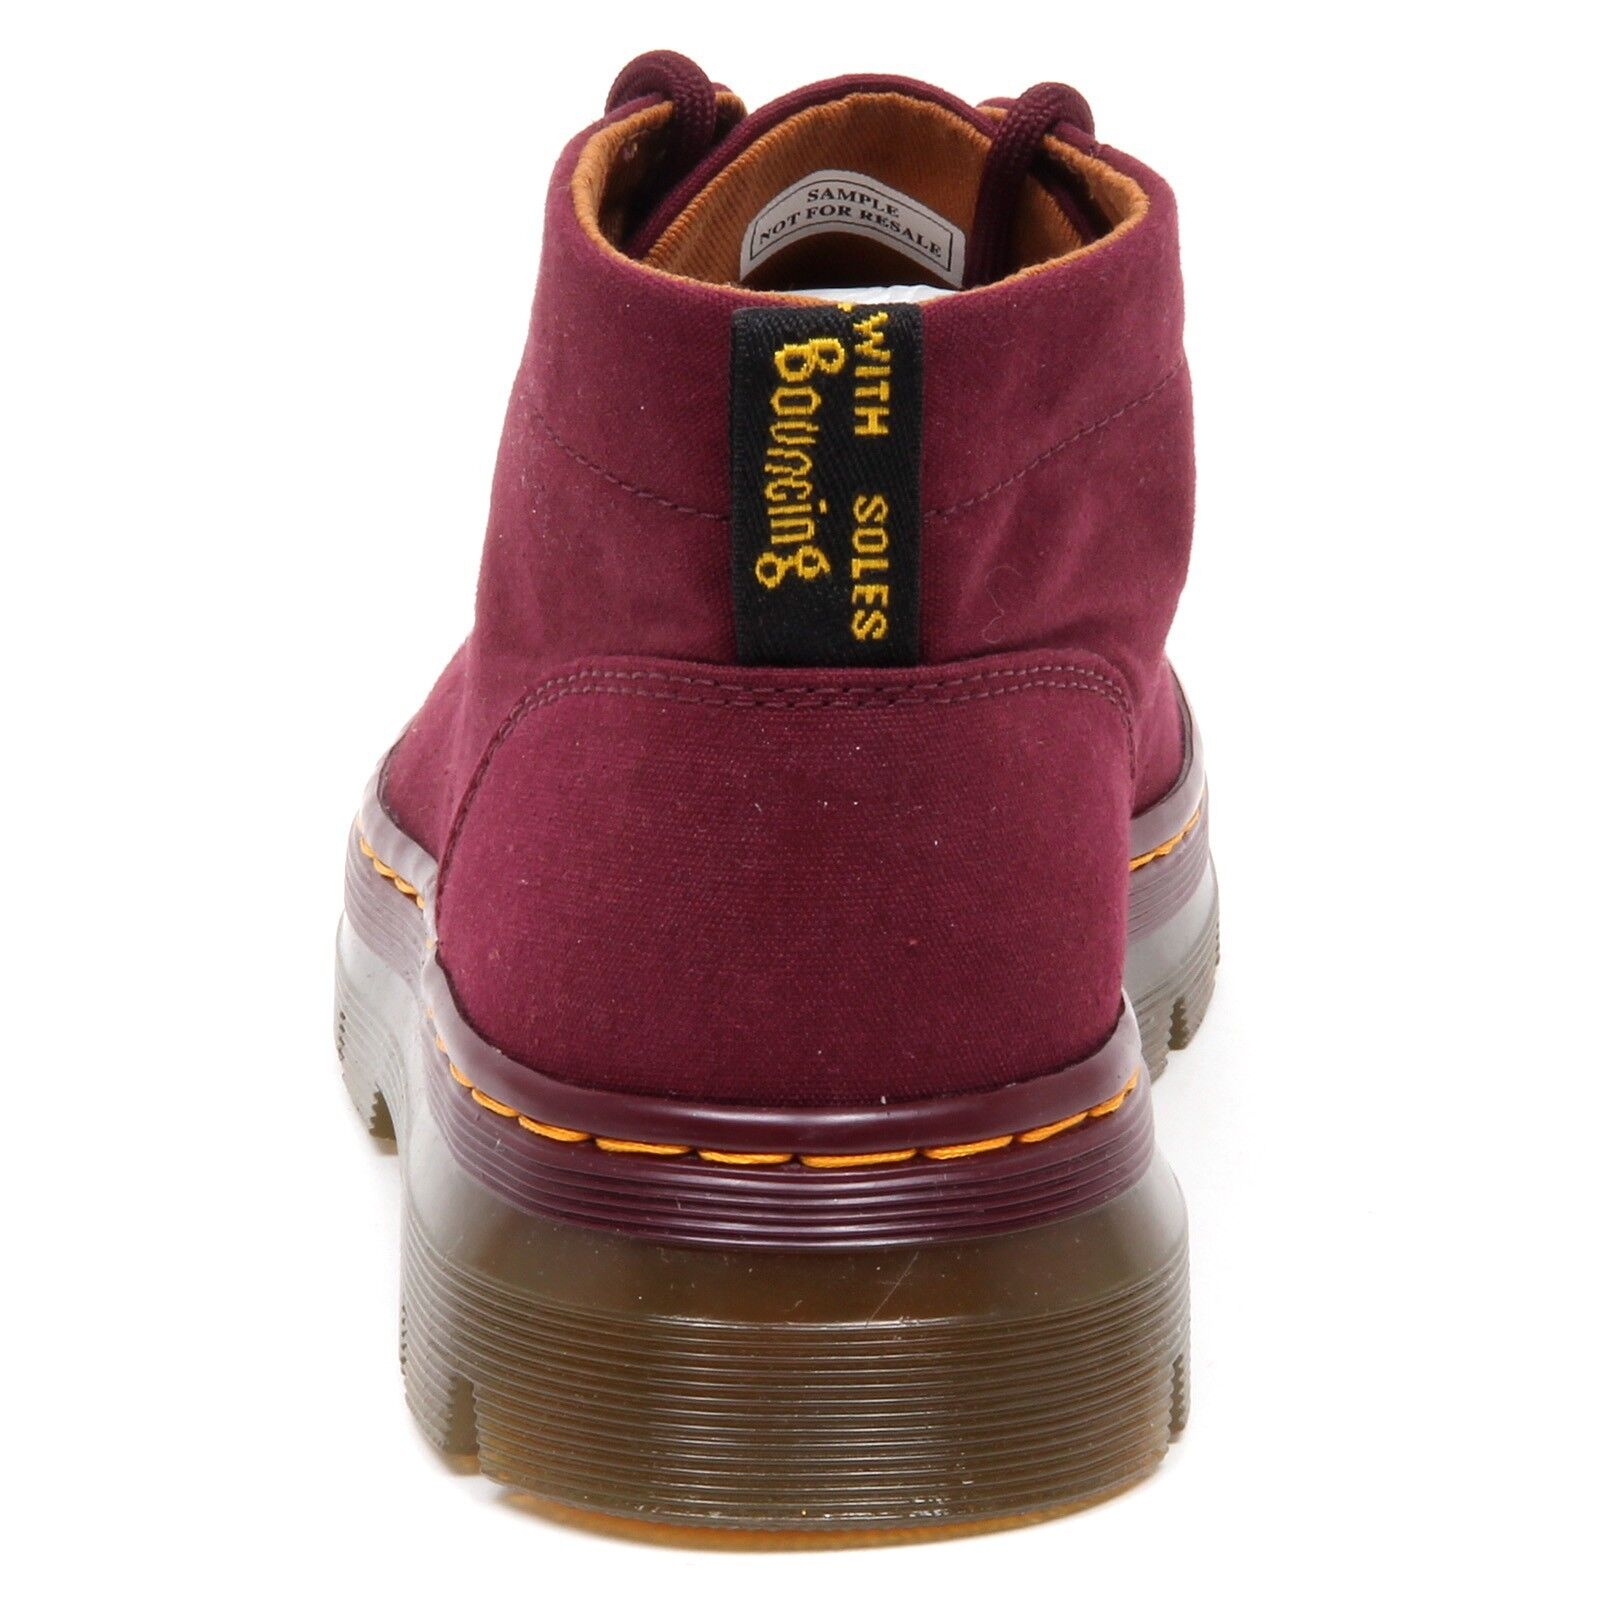 D7328 (SAMPLE NOT FOR RESALE WITHOUT donna BOX) scarpa donna WITHOUT canvas DR. MARTENS shoe 20d454